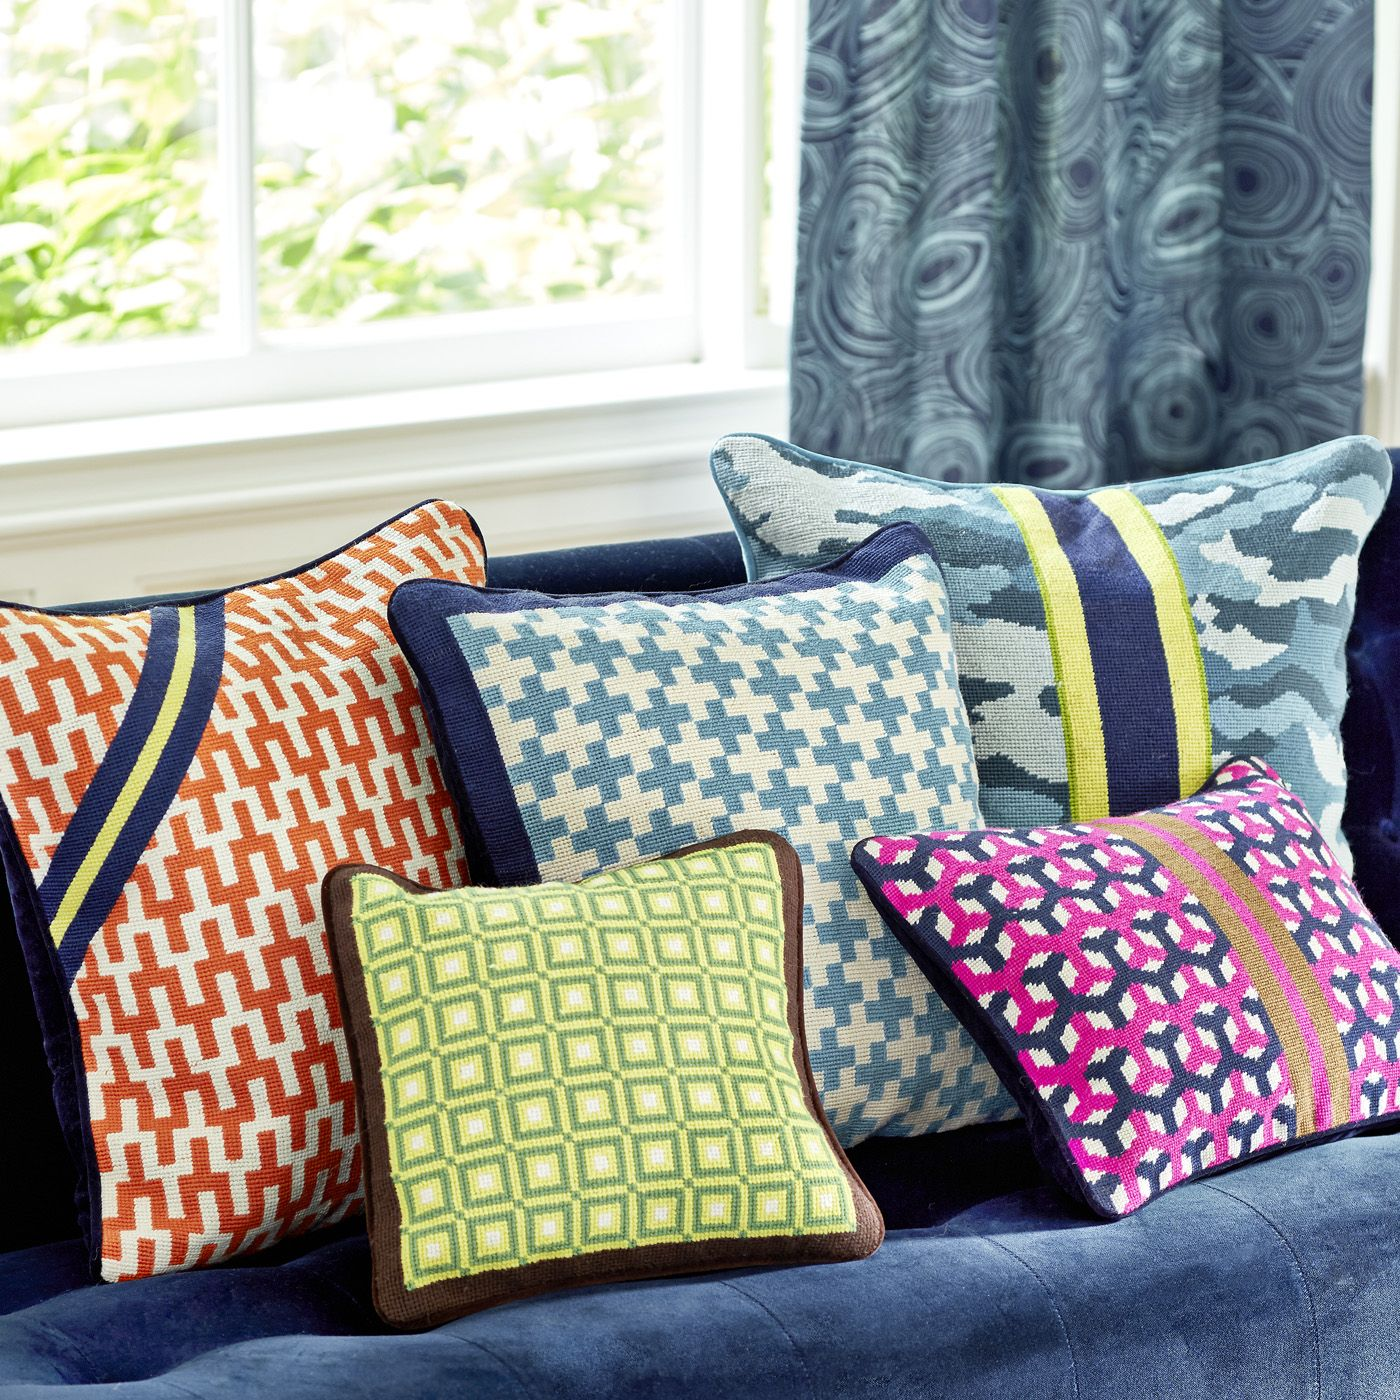 classic pillows by from dann designs home pillow hand elegant needlepoint htm collection made